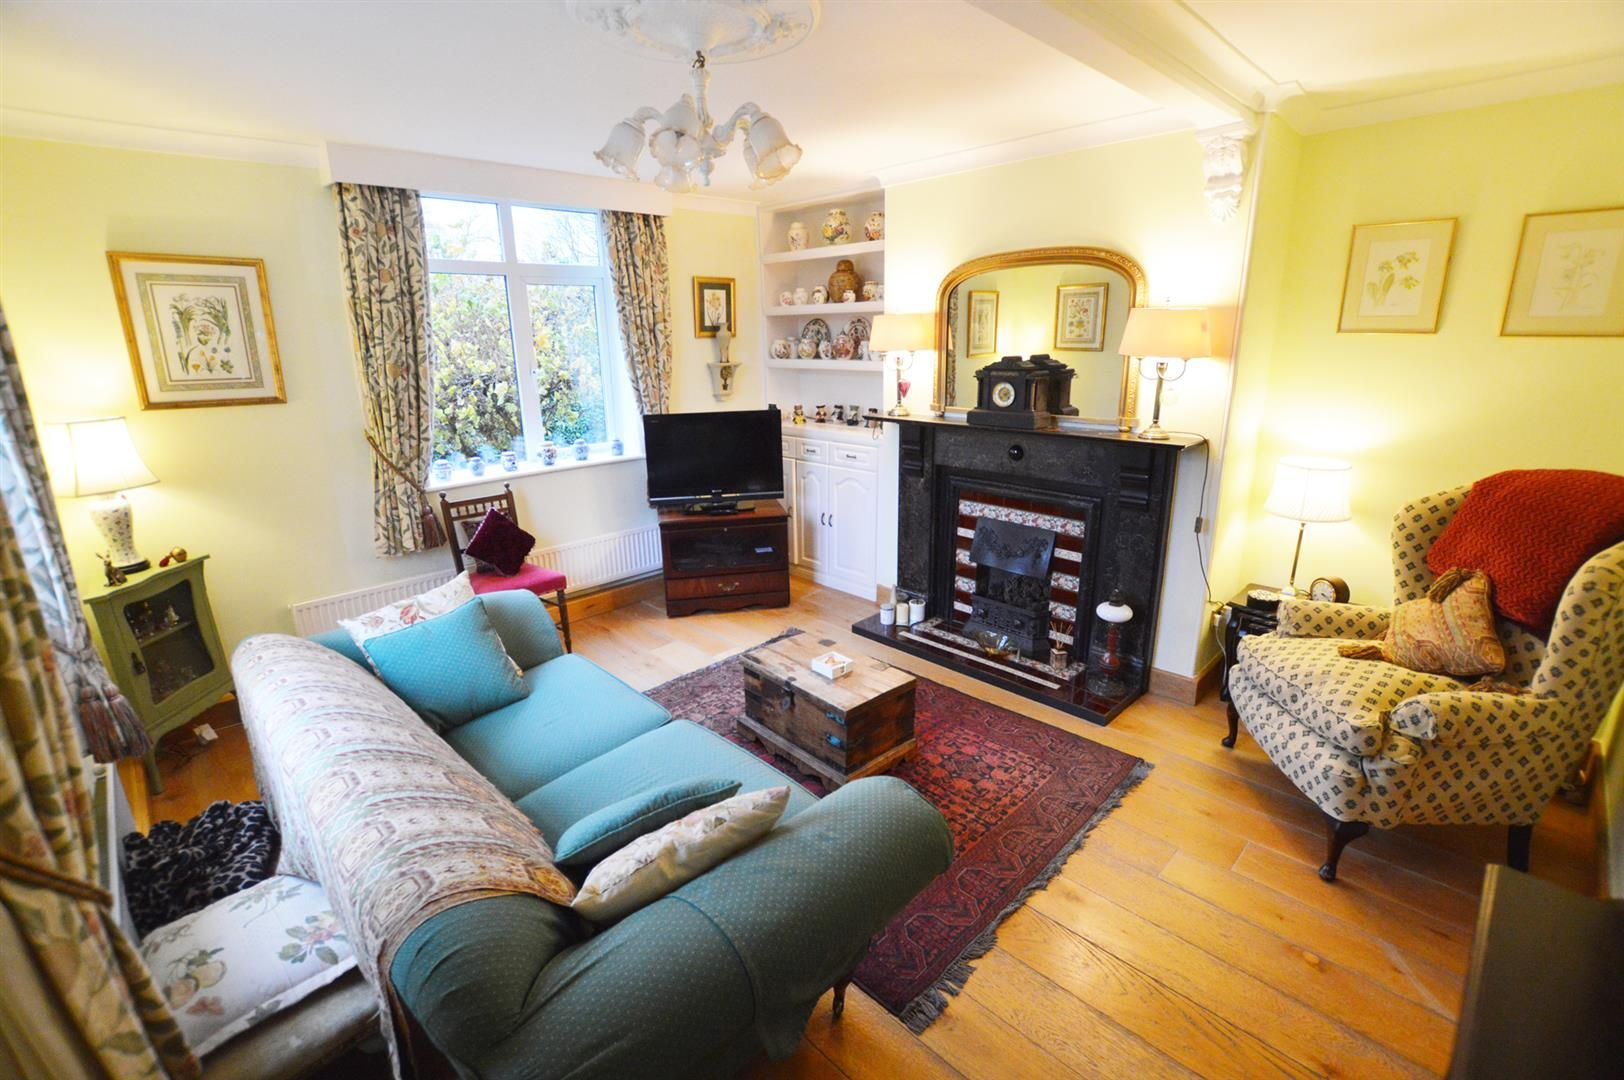 4 bed semi-detached for sale in Leysters 2